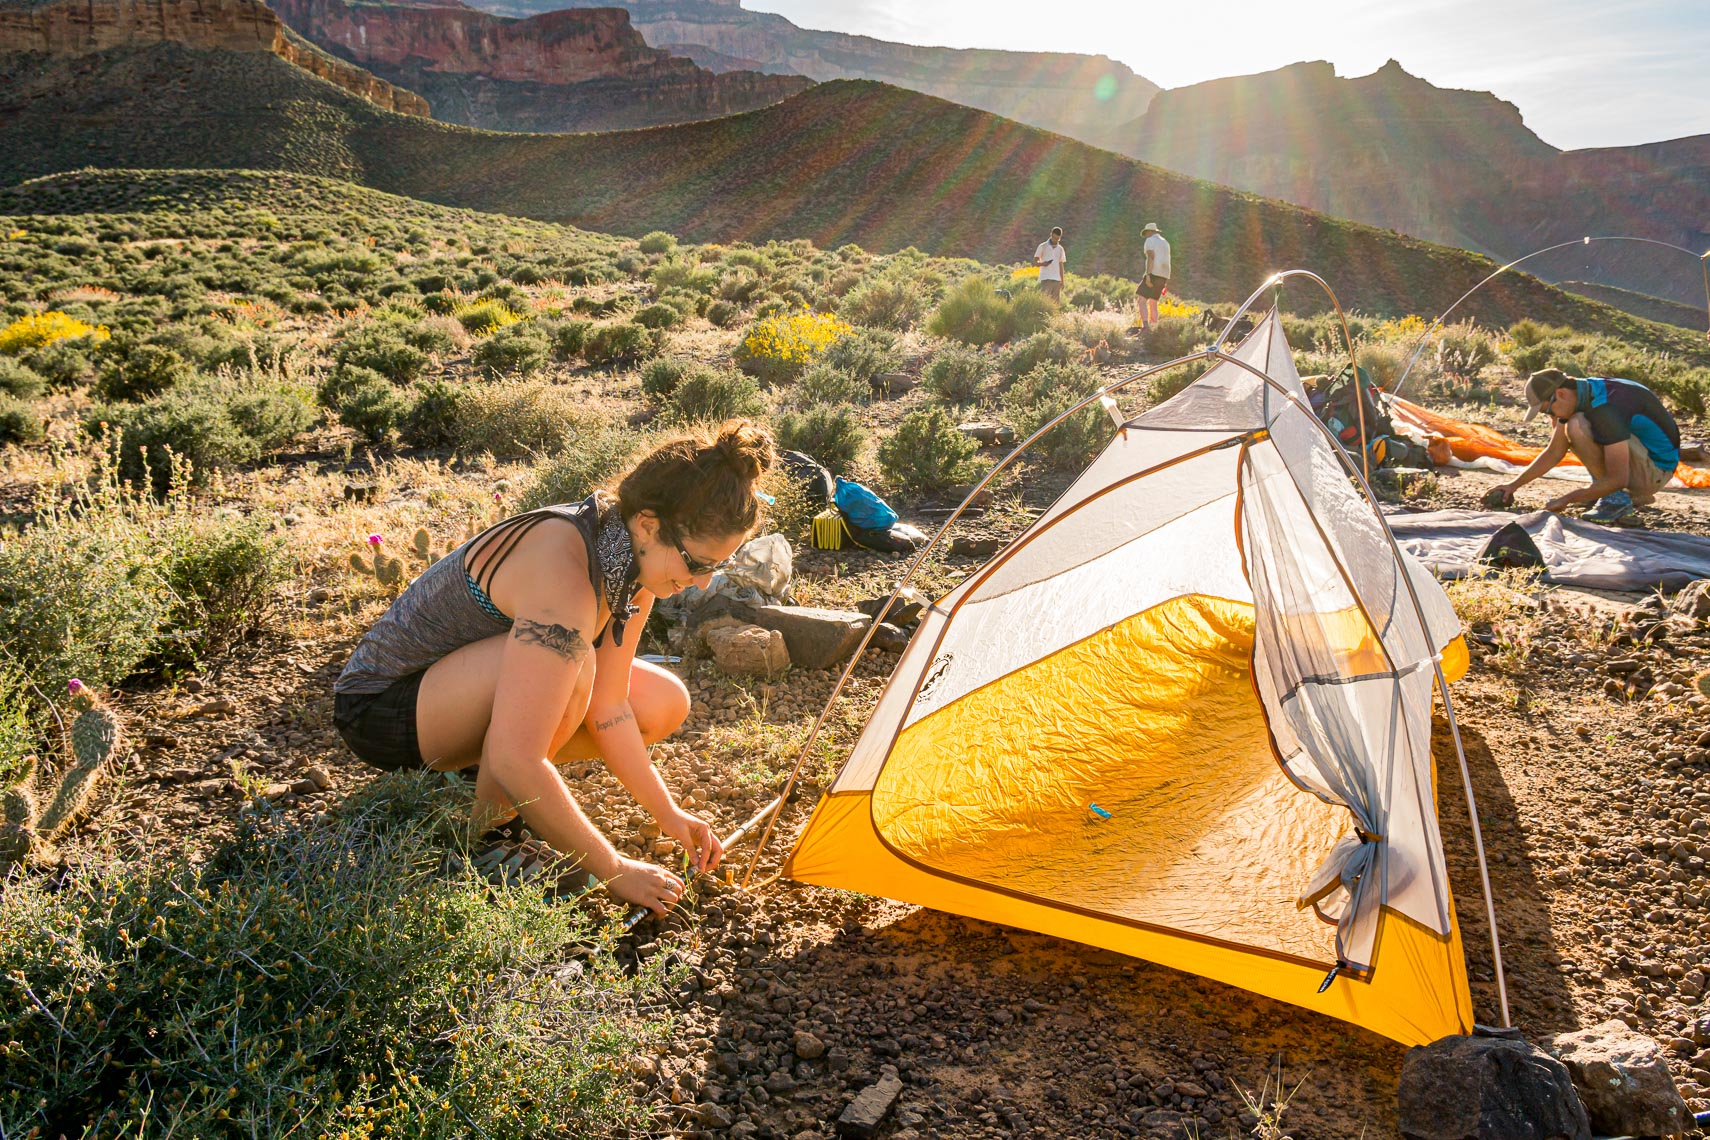 Female Ultralight Backpacker At Camp | Michael DeYoung